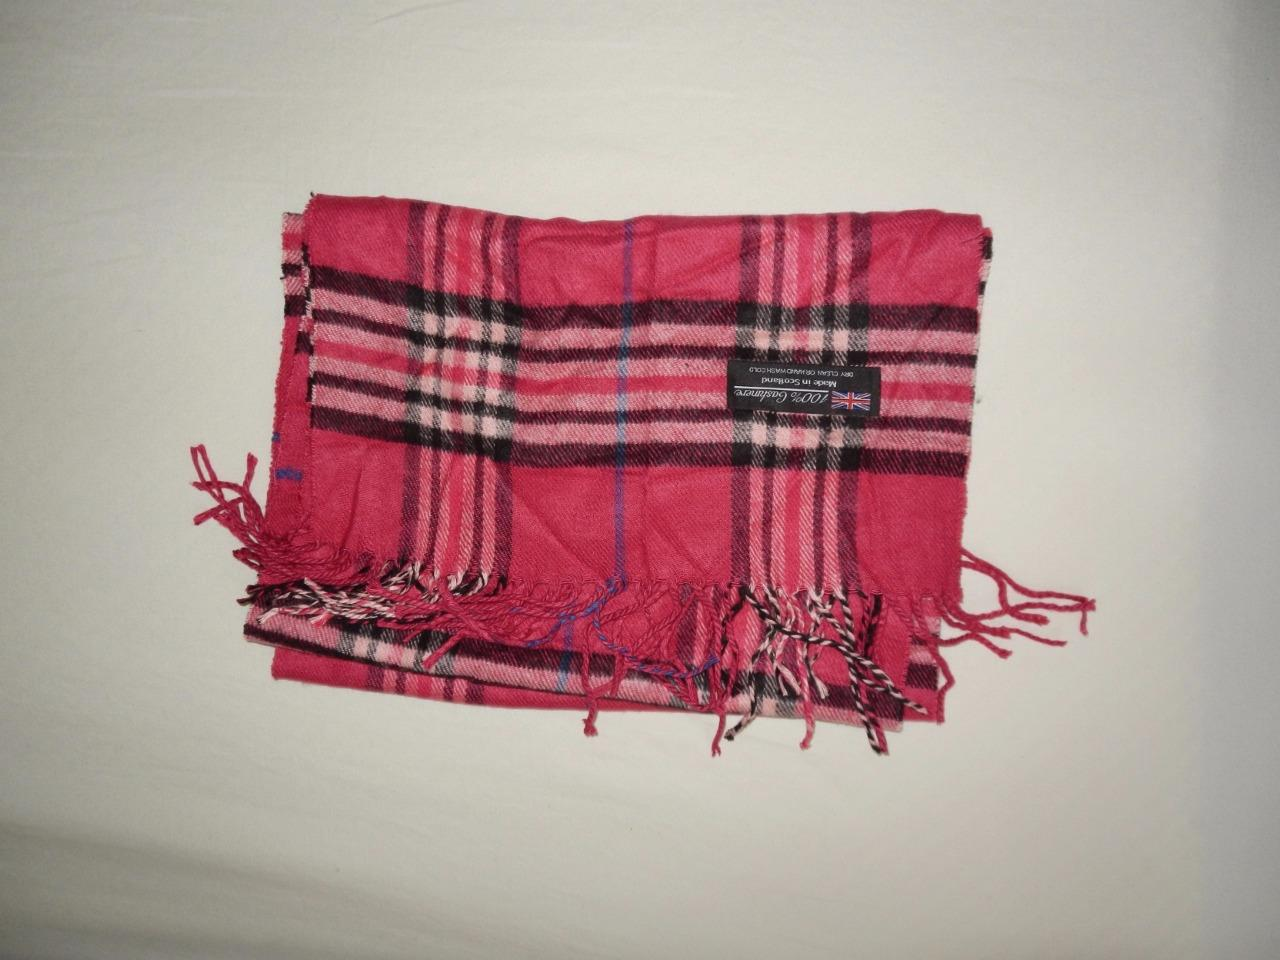 new scarves made in scotland many colors and